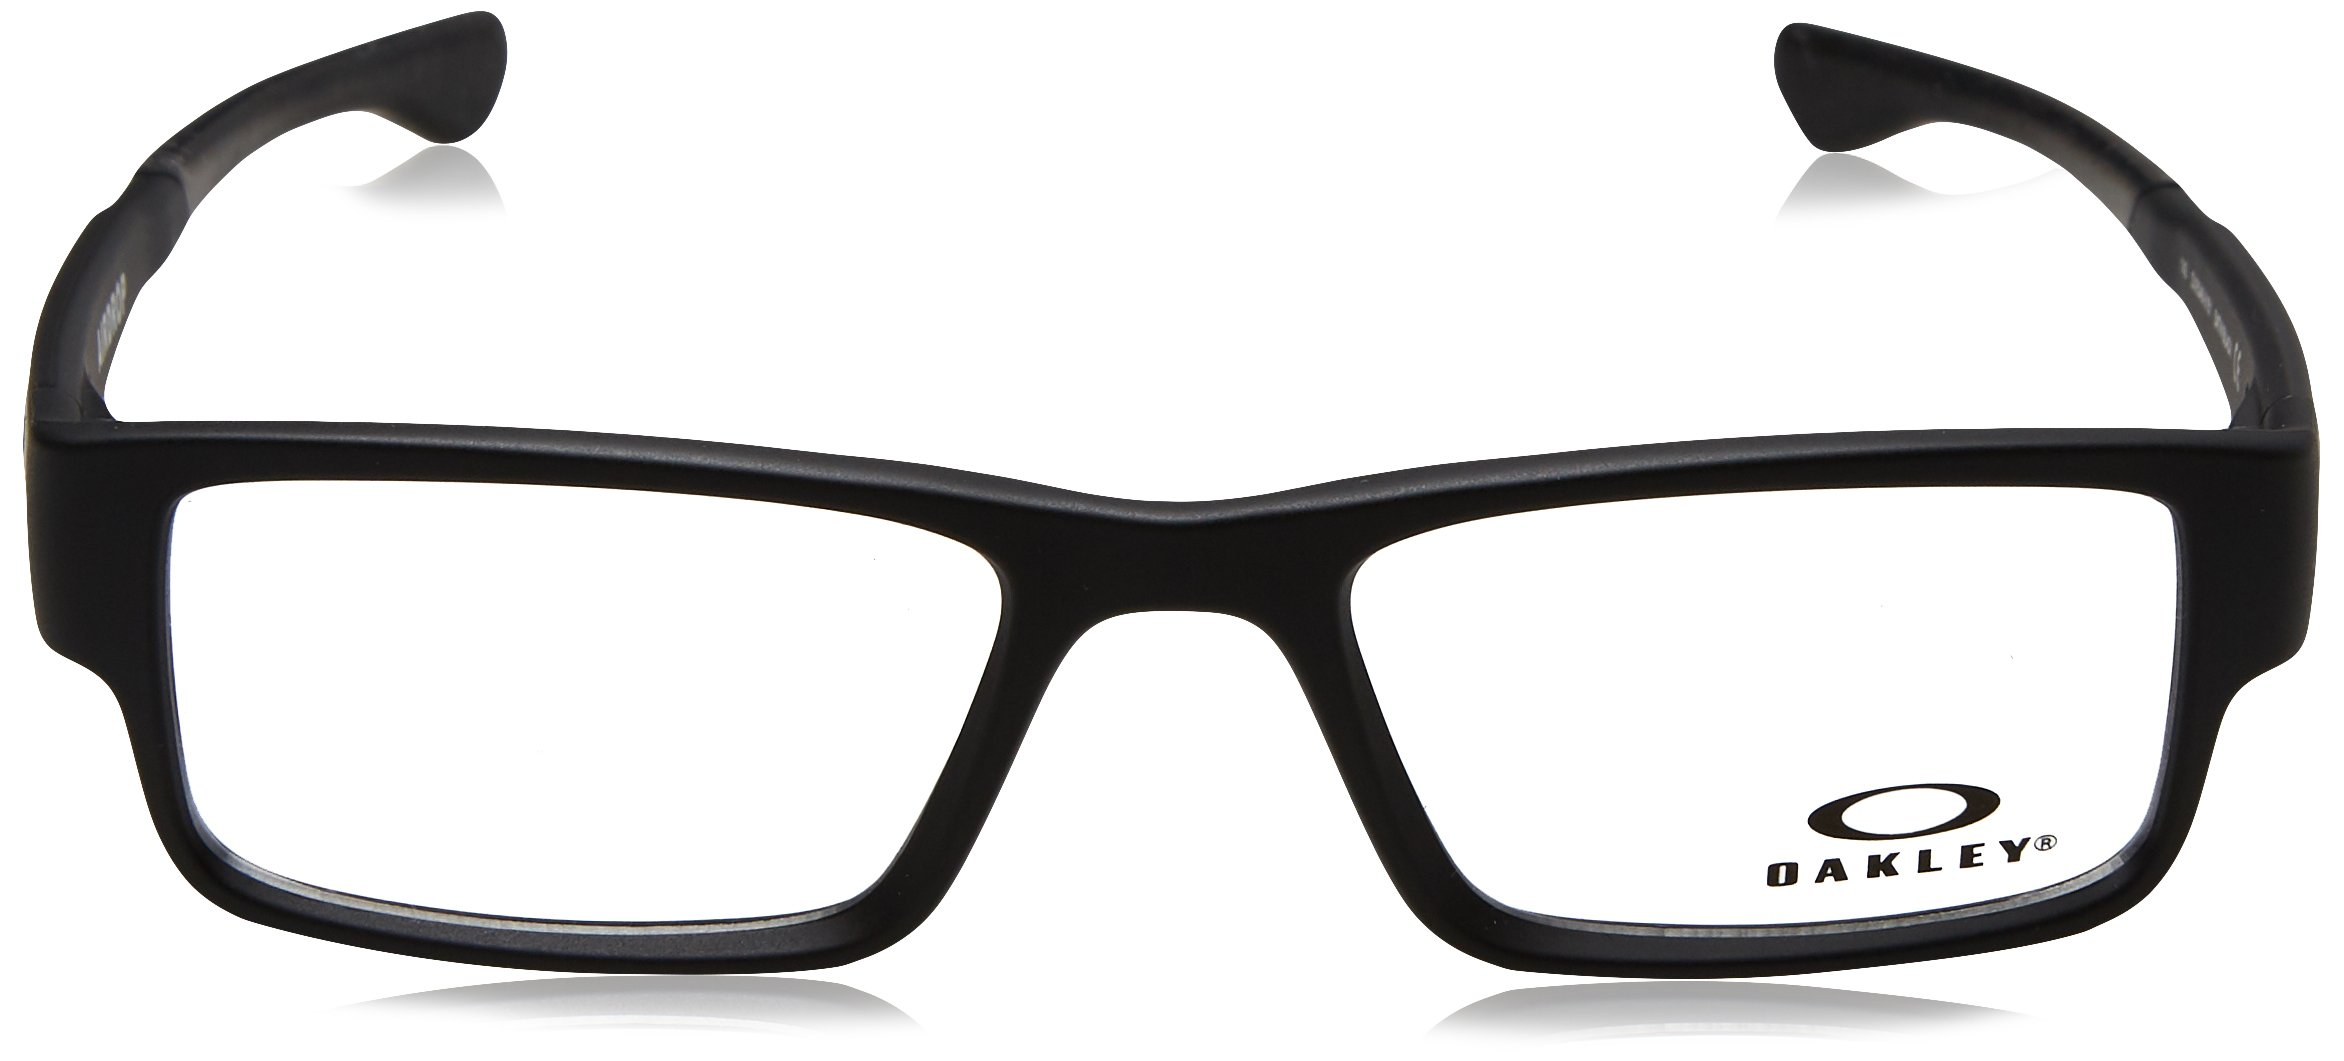 1281b44805 Overview Specifications. Eyeglasses Oakley Frame OX 8046 804601 SATIN  BLACK. Buy with confidence!